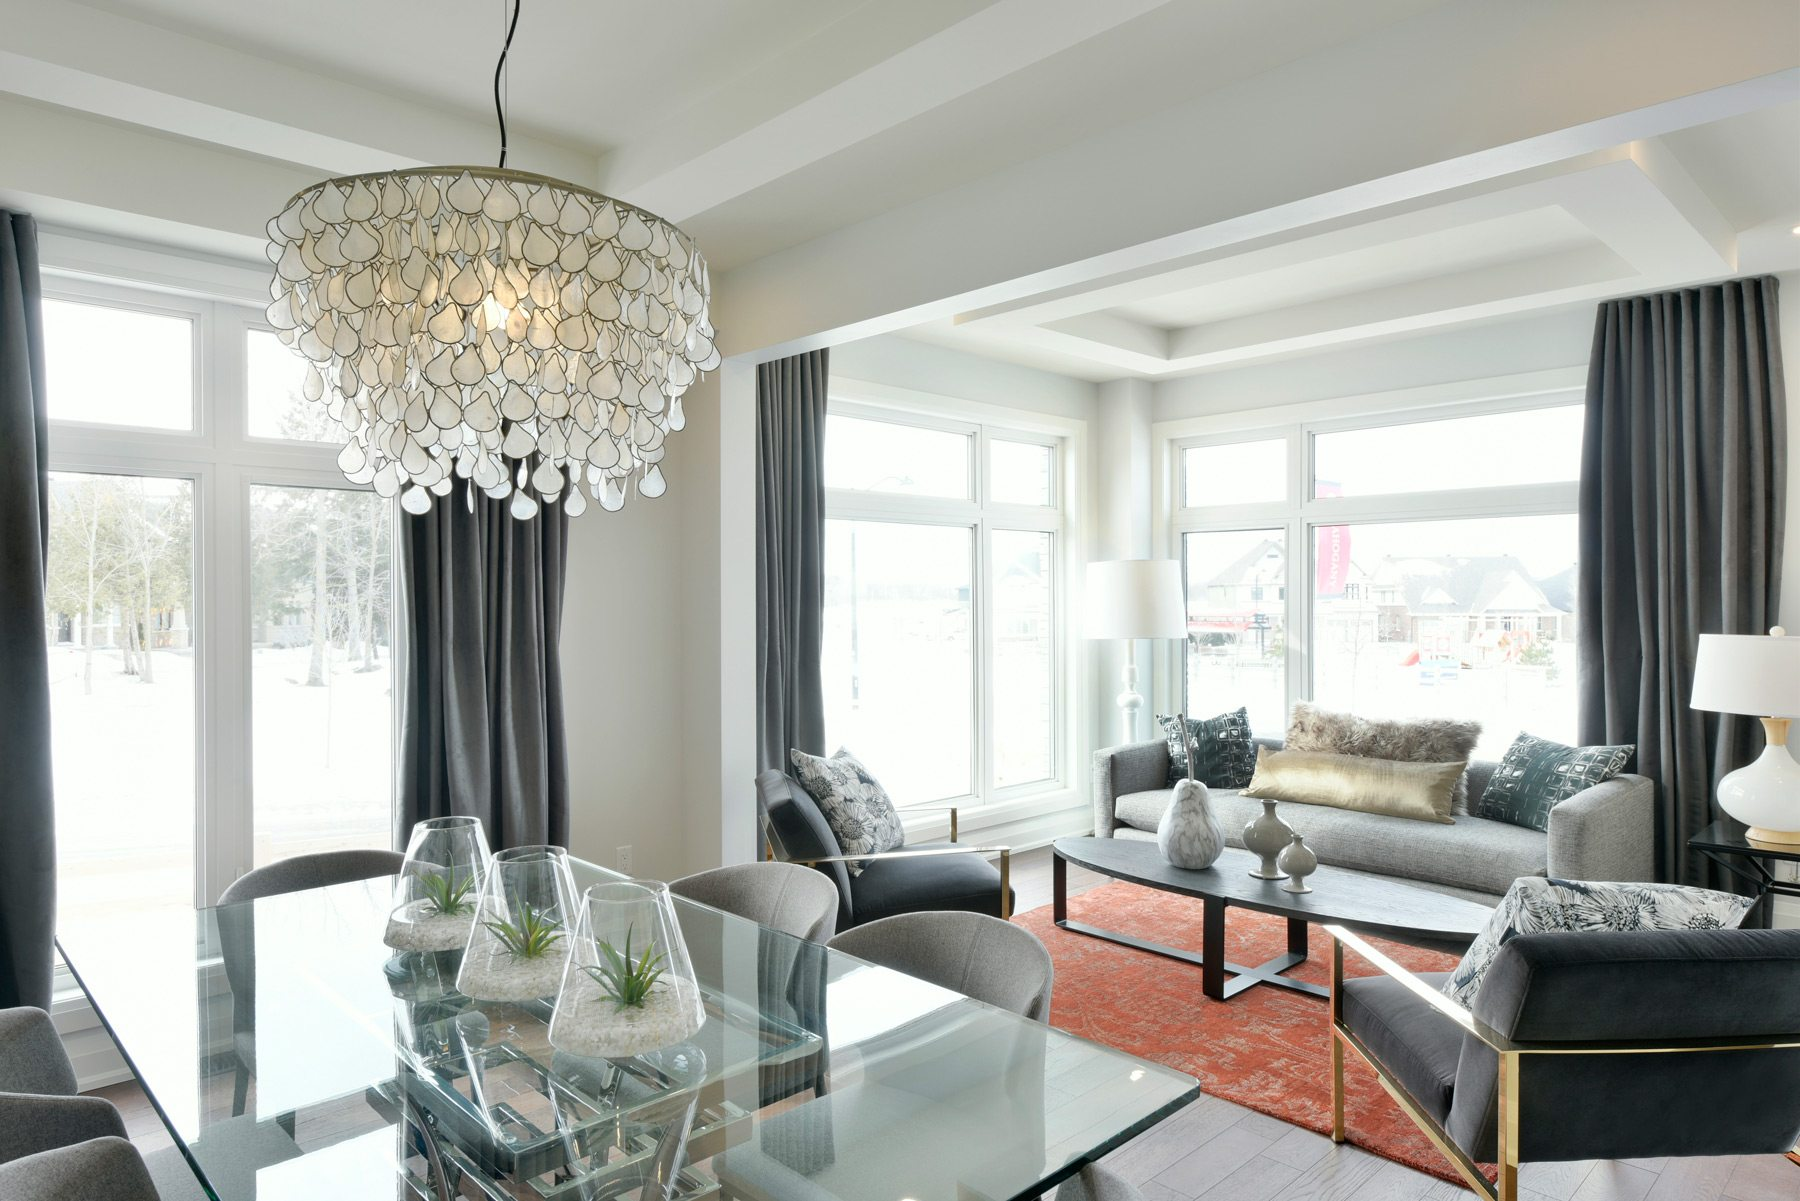 Minto's Elderberry living and dining room. Photo: Gordon King Photography